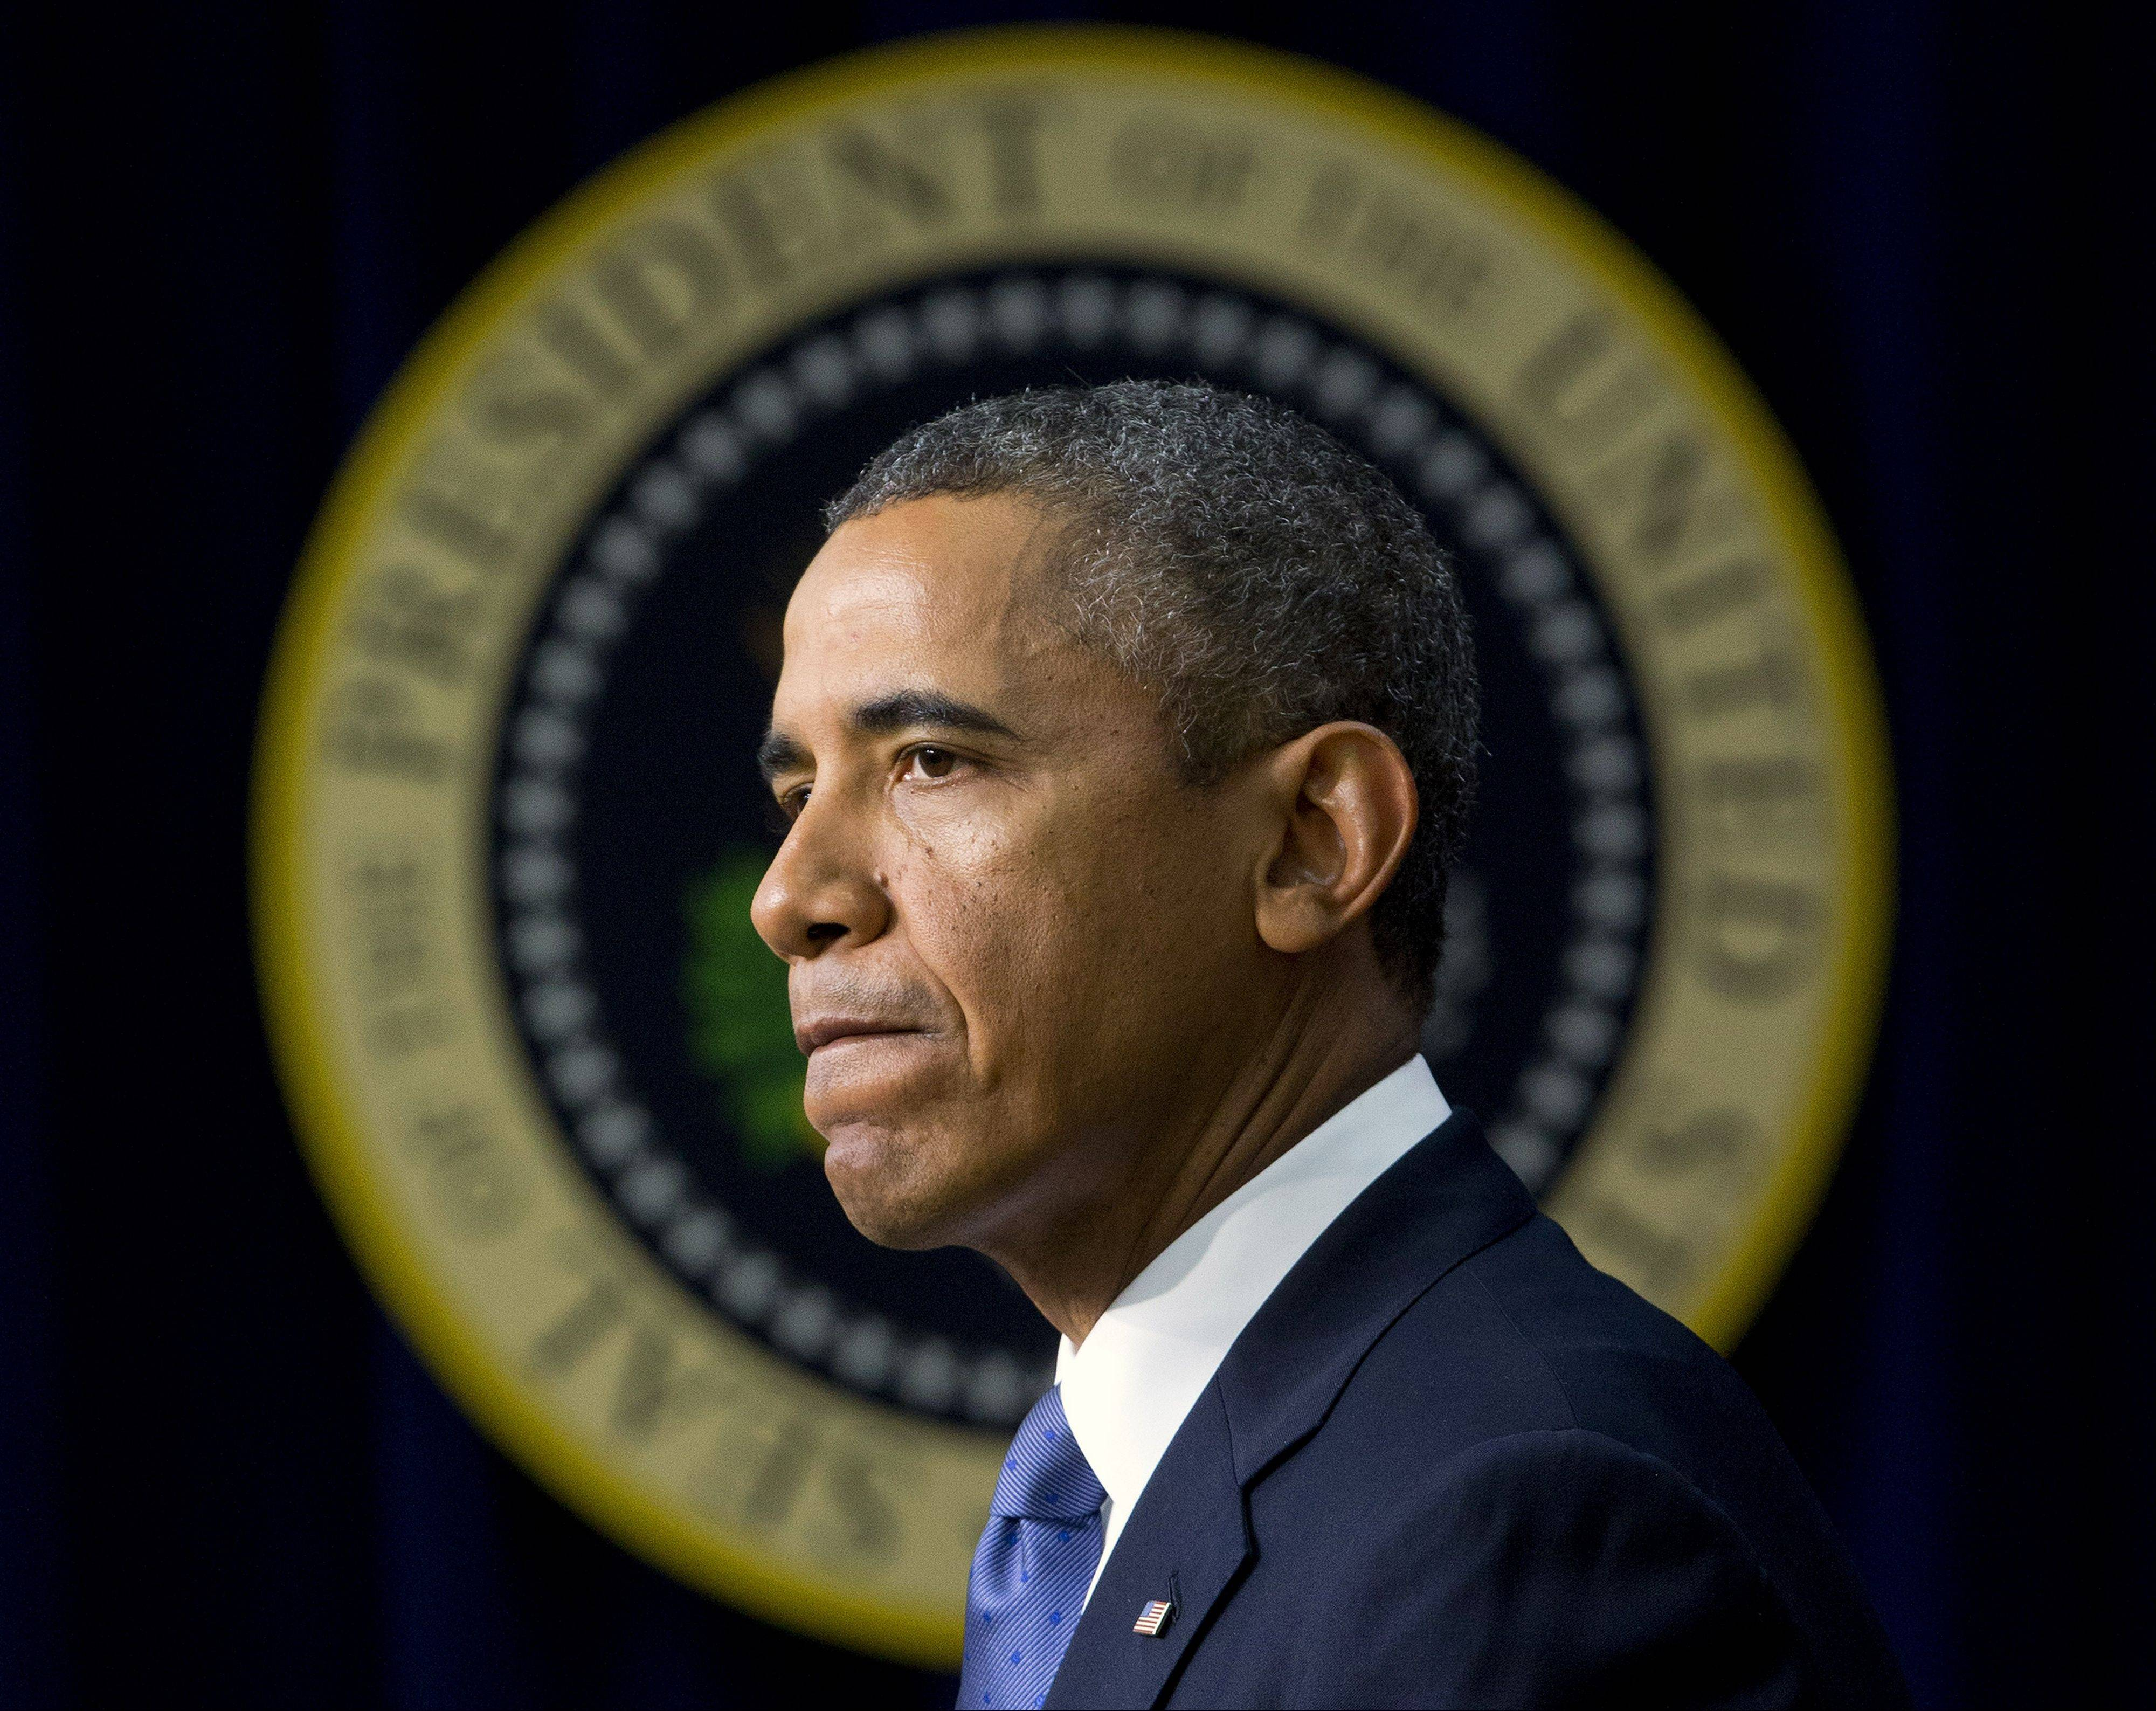 President Barack Obama, facing a budget showdown with Congress, is pushing his economic agenda to some of the nation's top corporate executives today while cautioning Republicans not to precipitate a government shutdown or an unprecedented debt default.